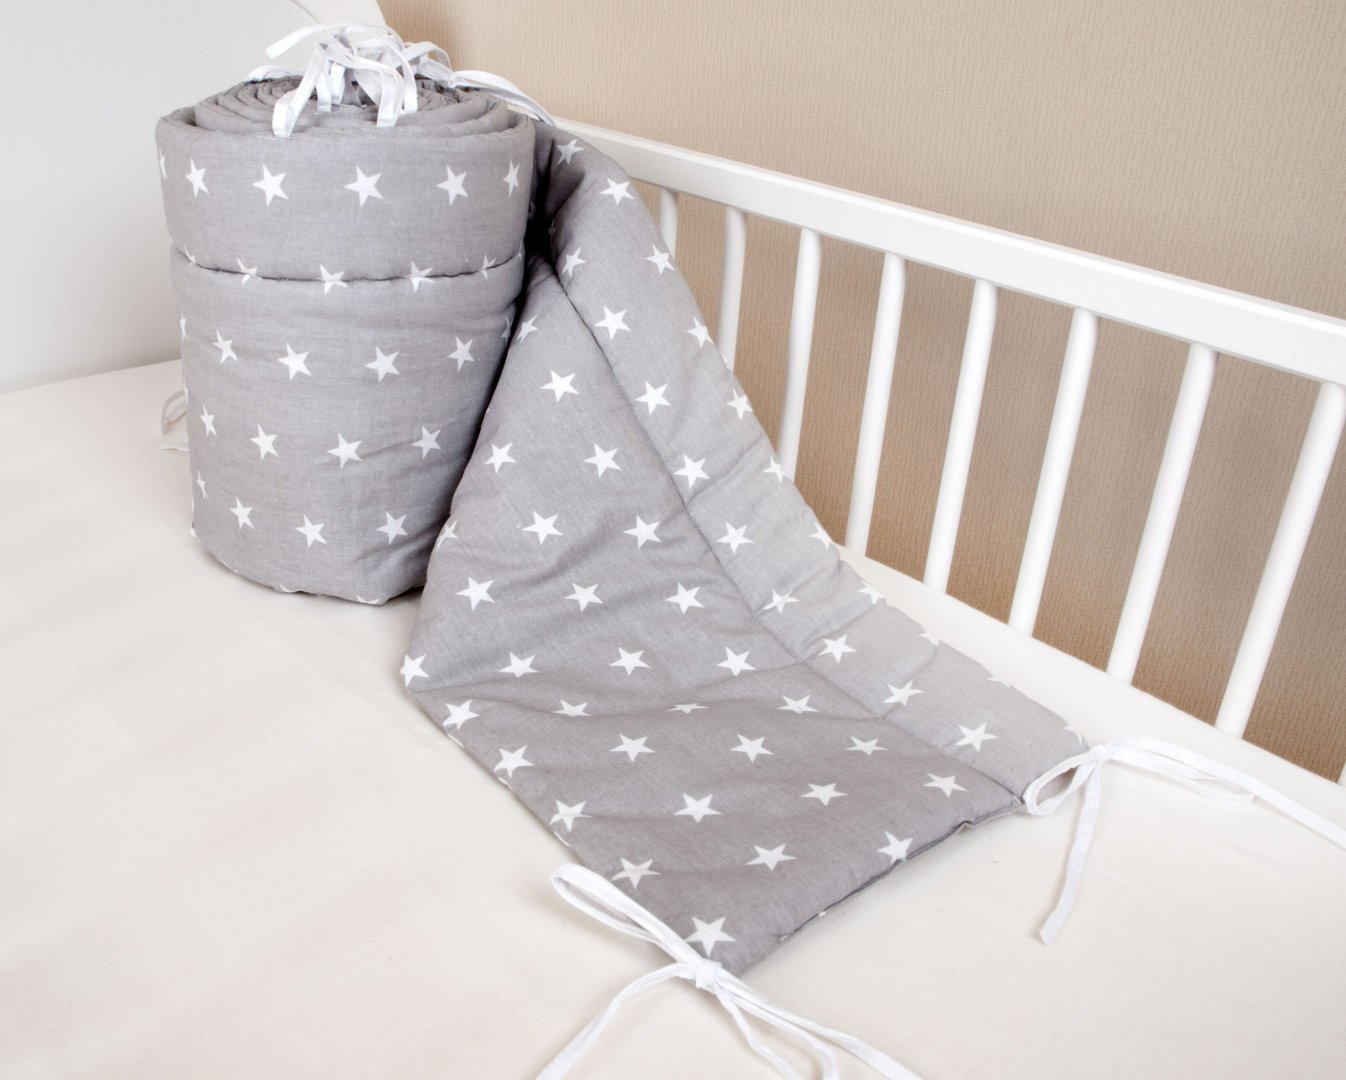 Amilian® Baby Cot Bumper Wrap Around Protection For Baby's Bed With Head Guard 100% hypo-Allergenic 100% Cotton Breathable and non-toxic materials Anti-allergic Star Print Grey Available In 3 Sizes (420 cm x 30 cm) (360 cm 30 cm) (180 cm x 30 cm)